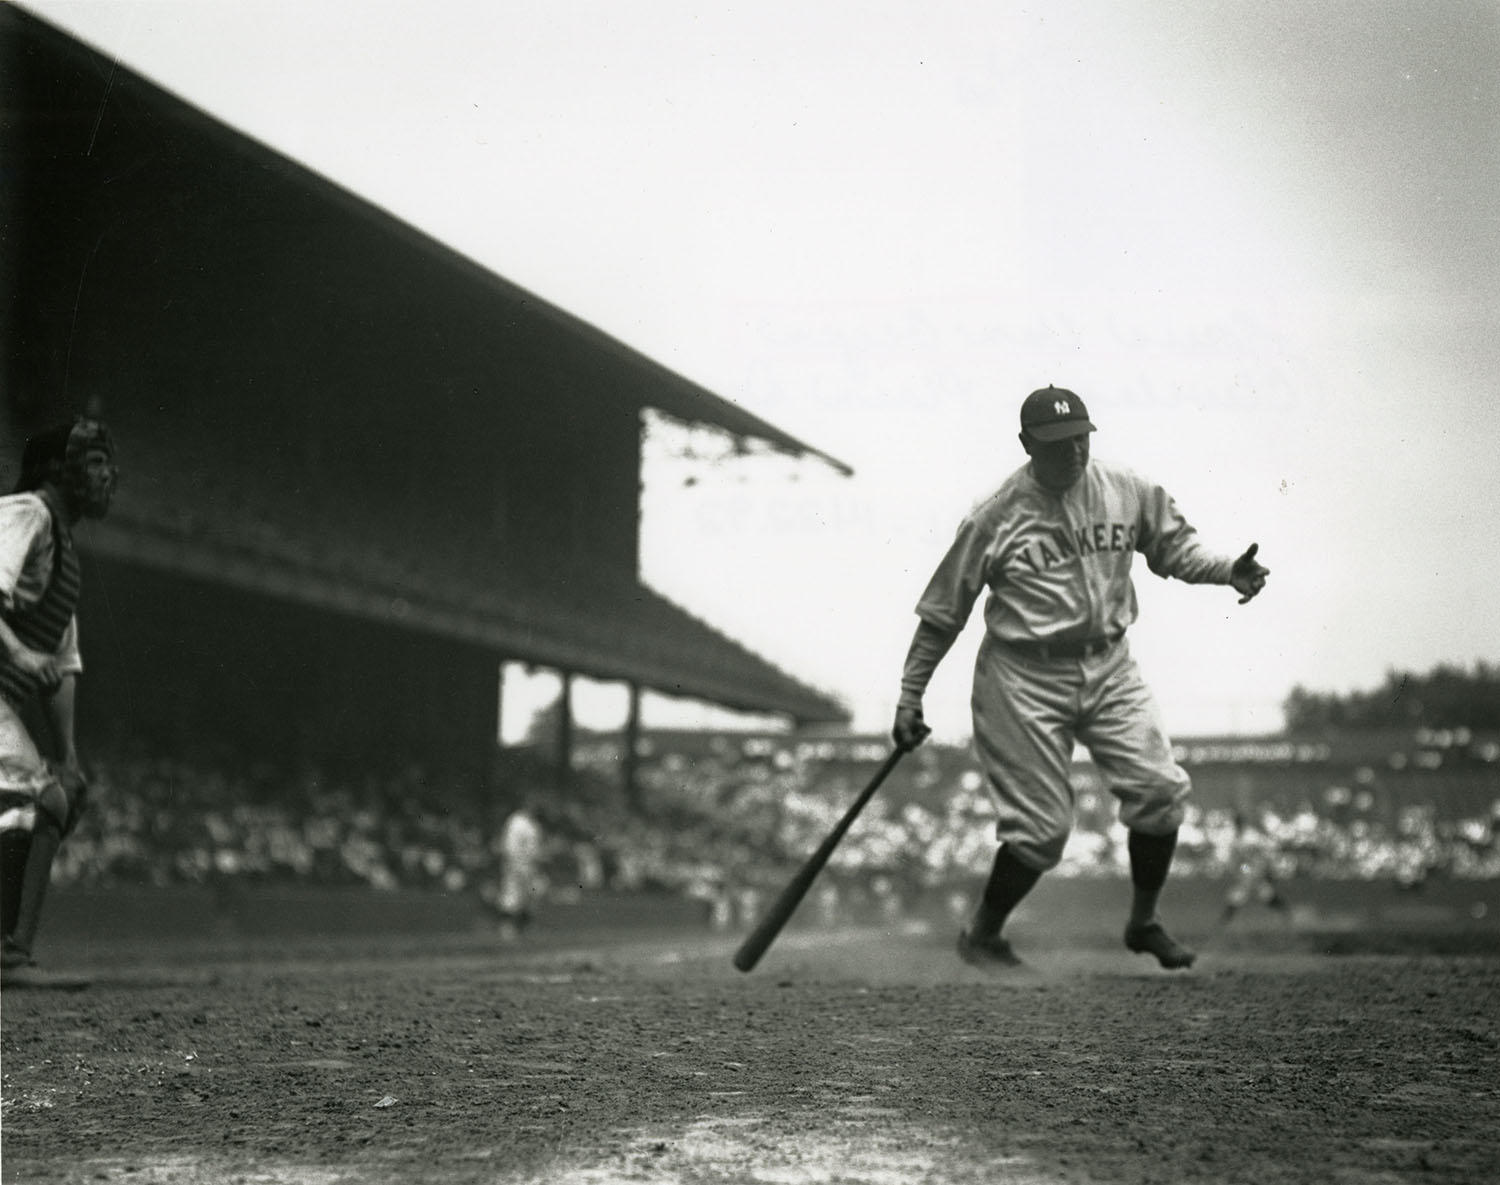 Although his record of 60 home runs has since been surpassed, Babe Ruth's 1927 season ranks as one of the greatest in baseball history. (National Baseball Hall of Fame)